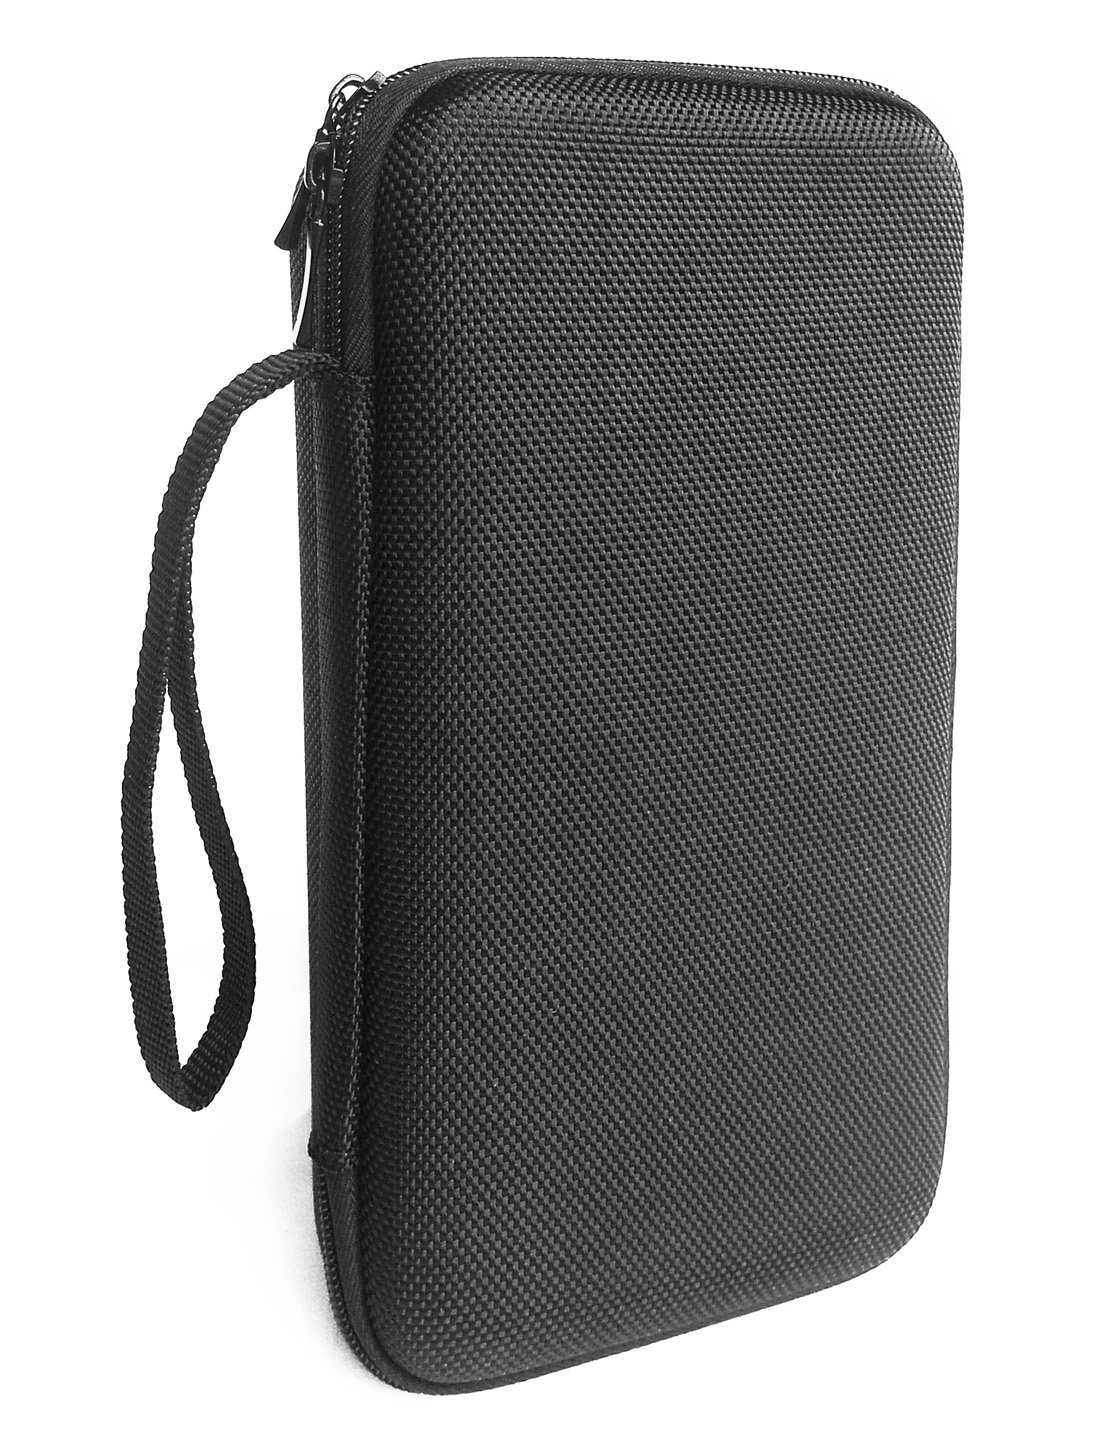 FitSand Hard Case for Raytek MT6 Non-Contact MiniTemp Infrared Thermometer